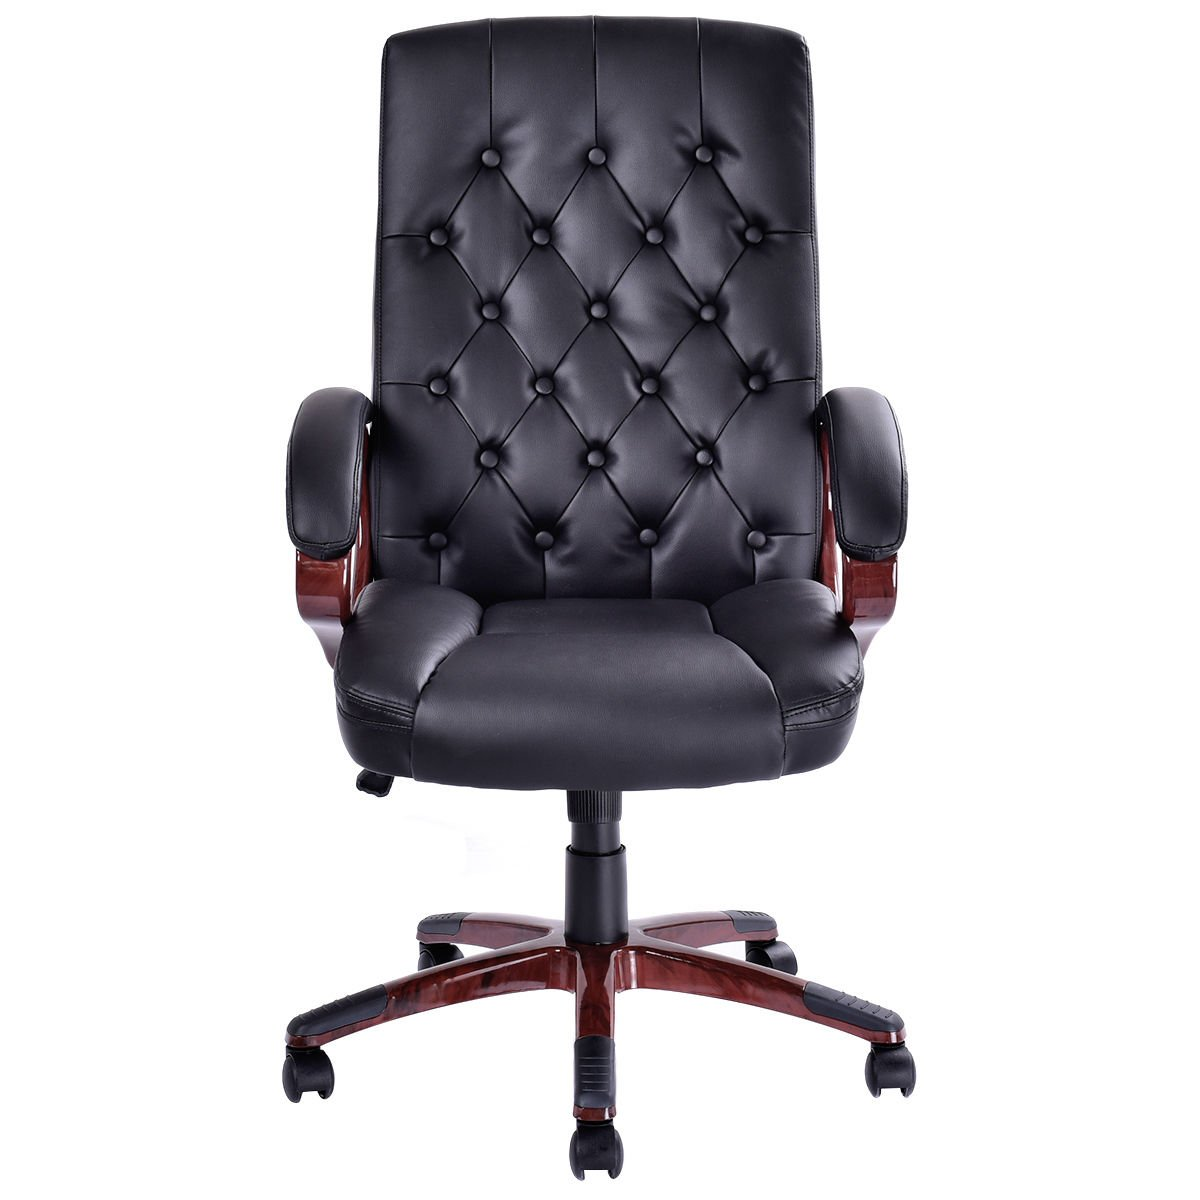 Giantex Ergonomic High Back Traditional Tufted Swivel Office Executive Chair, Black 1